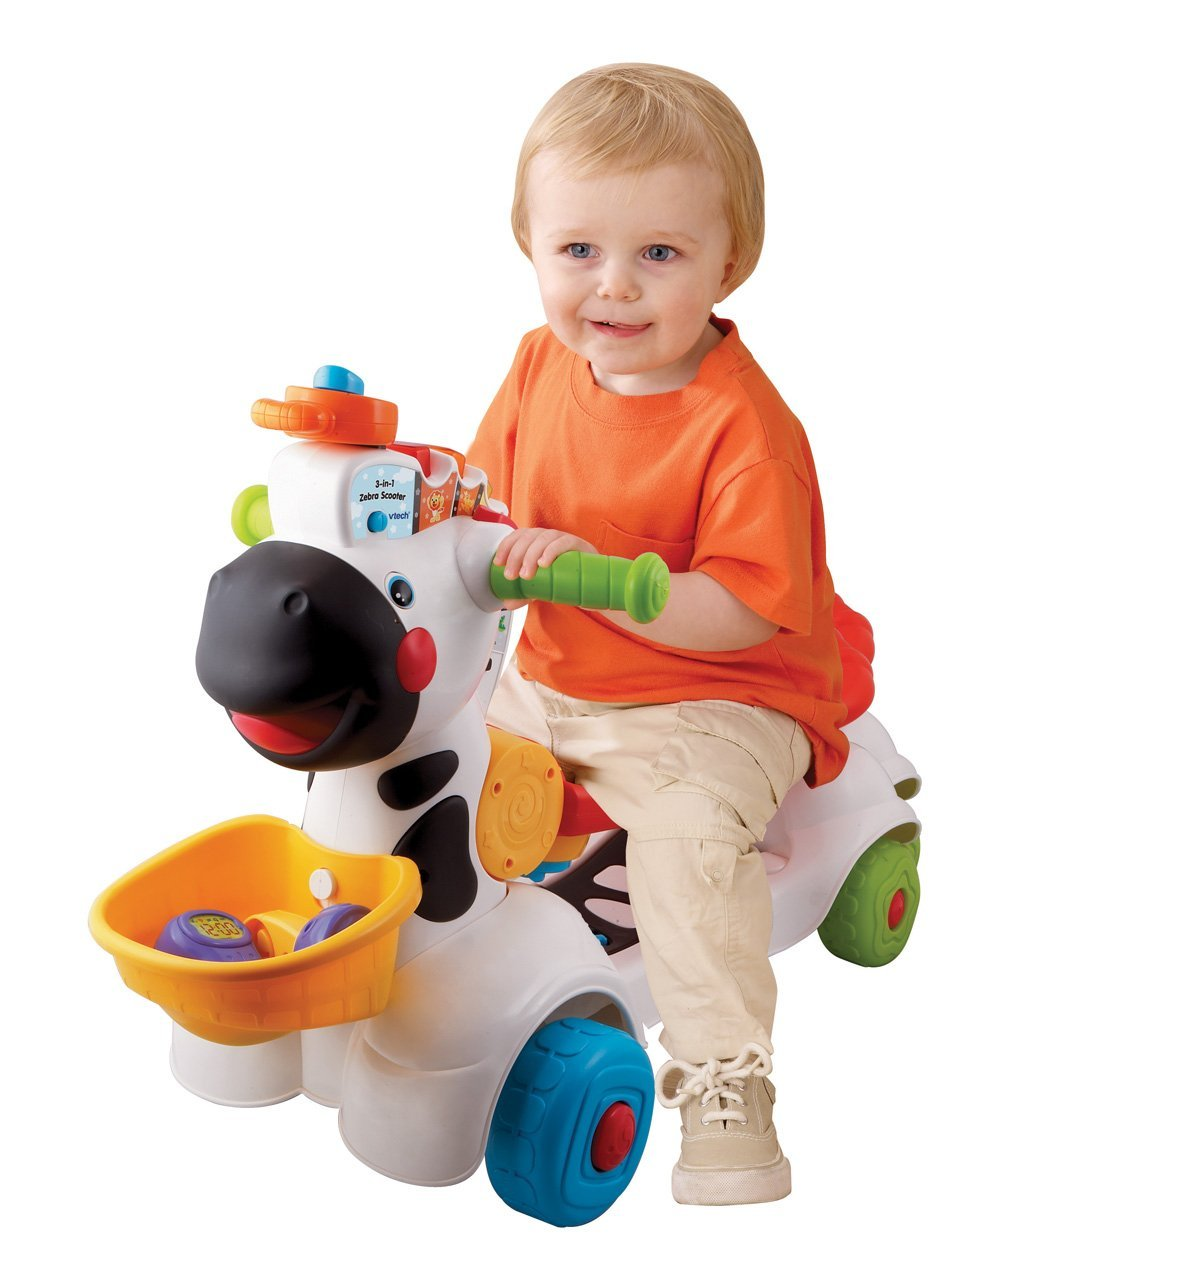 Learning Toys For 1 Year Old Boy